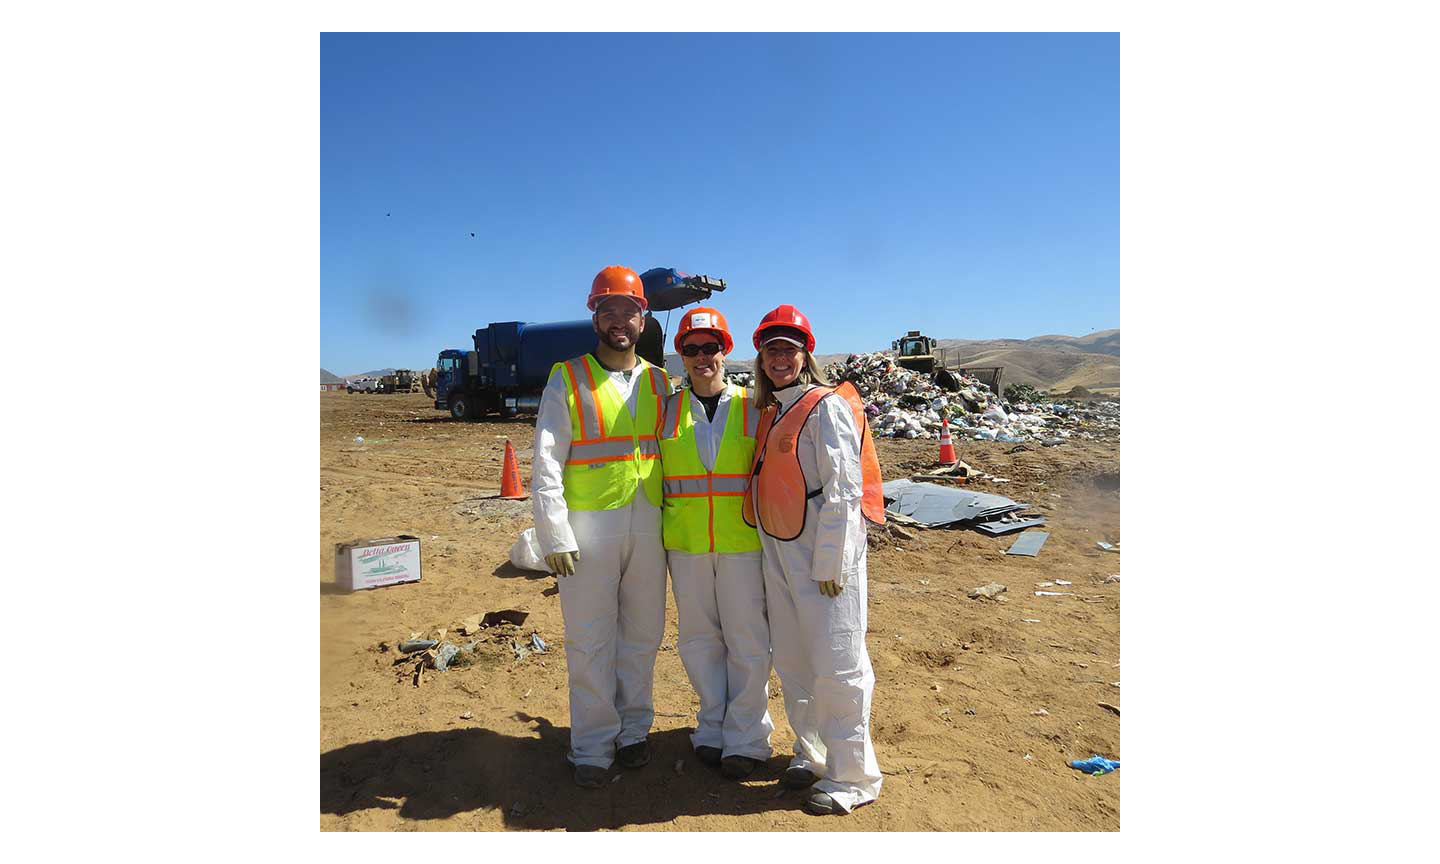 Wyatt Maysey, senior account manager at MTI; Mandy Brooks, resource recovery manager at Salinas Valley Recycles, and Nikki Rodoni, founder and CEO of MTI, during a recent waste audit.